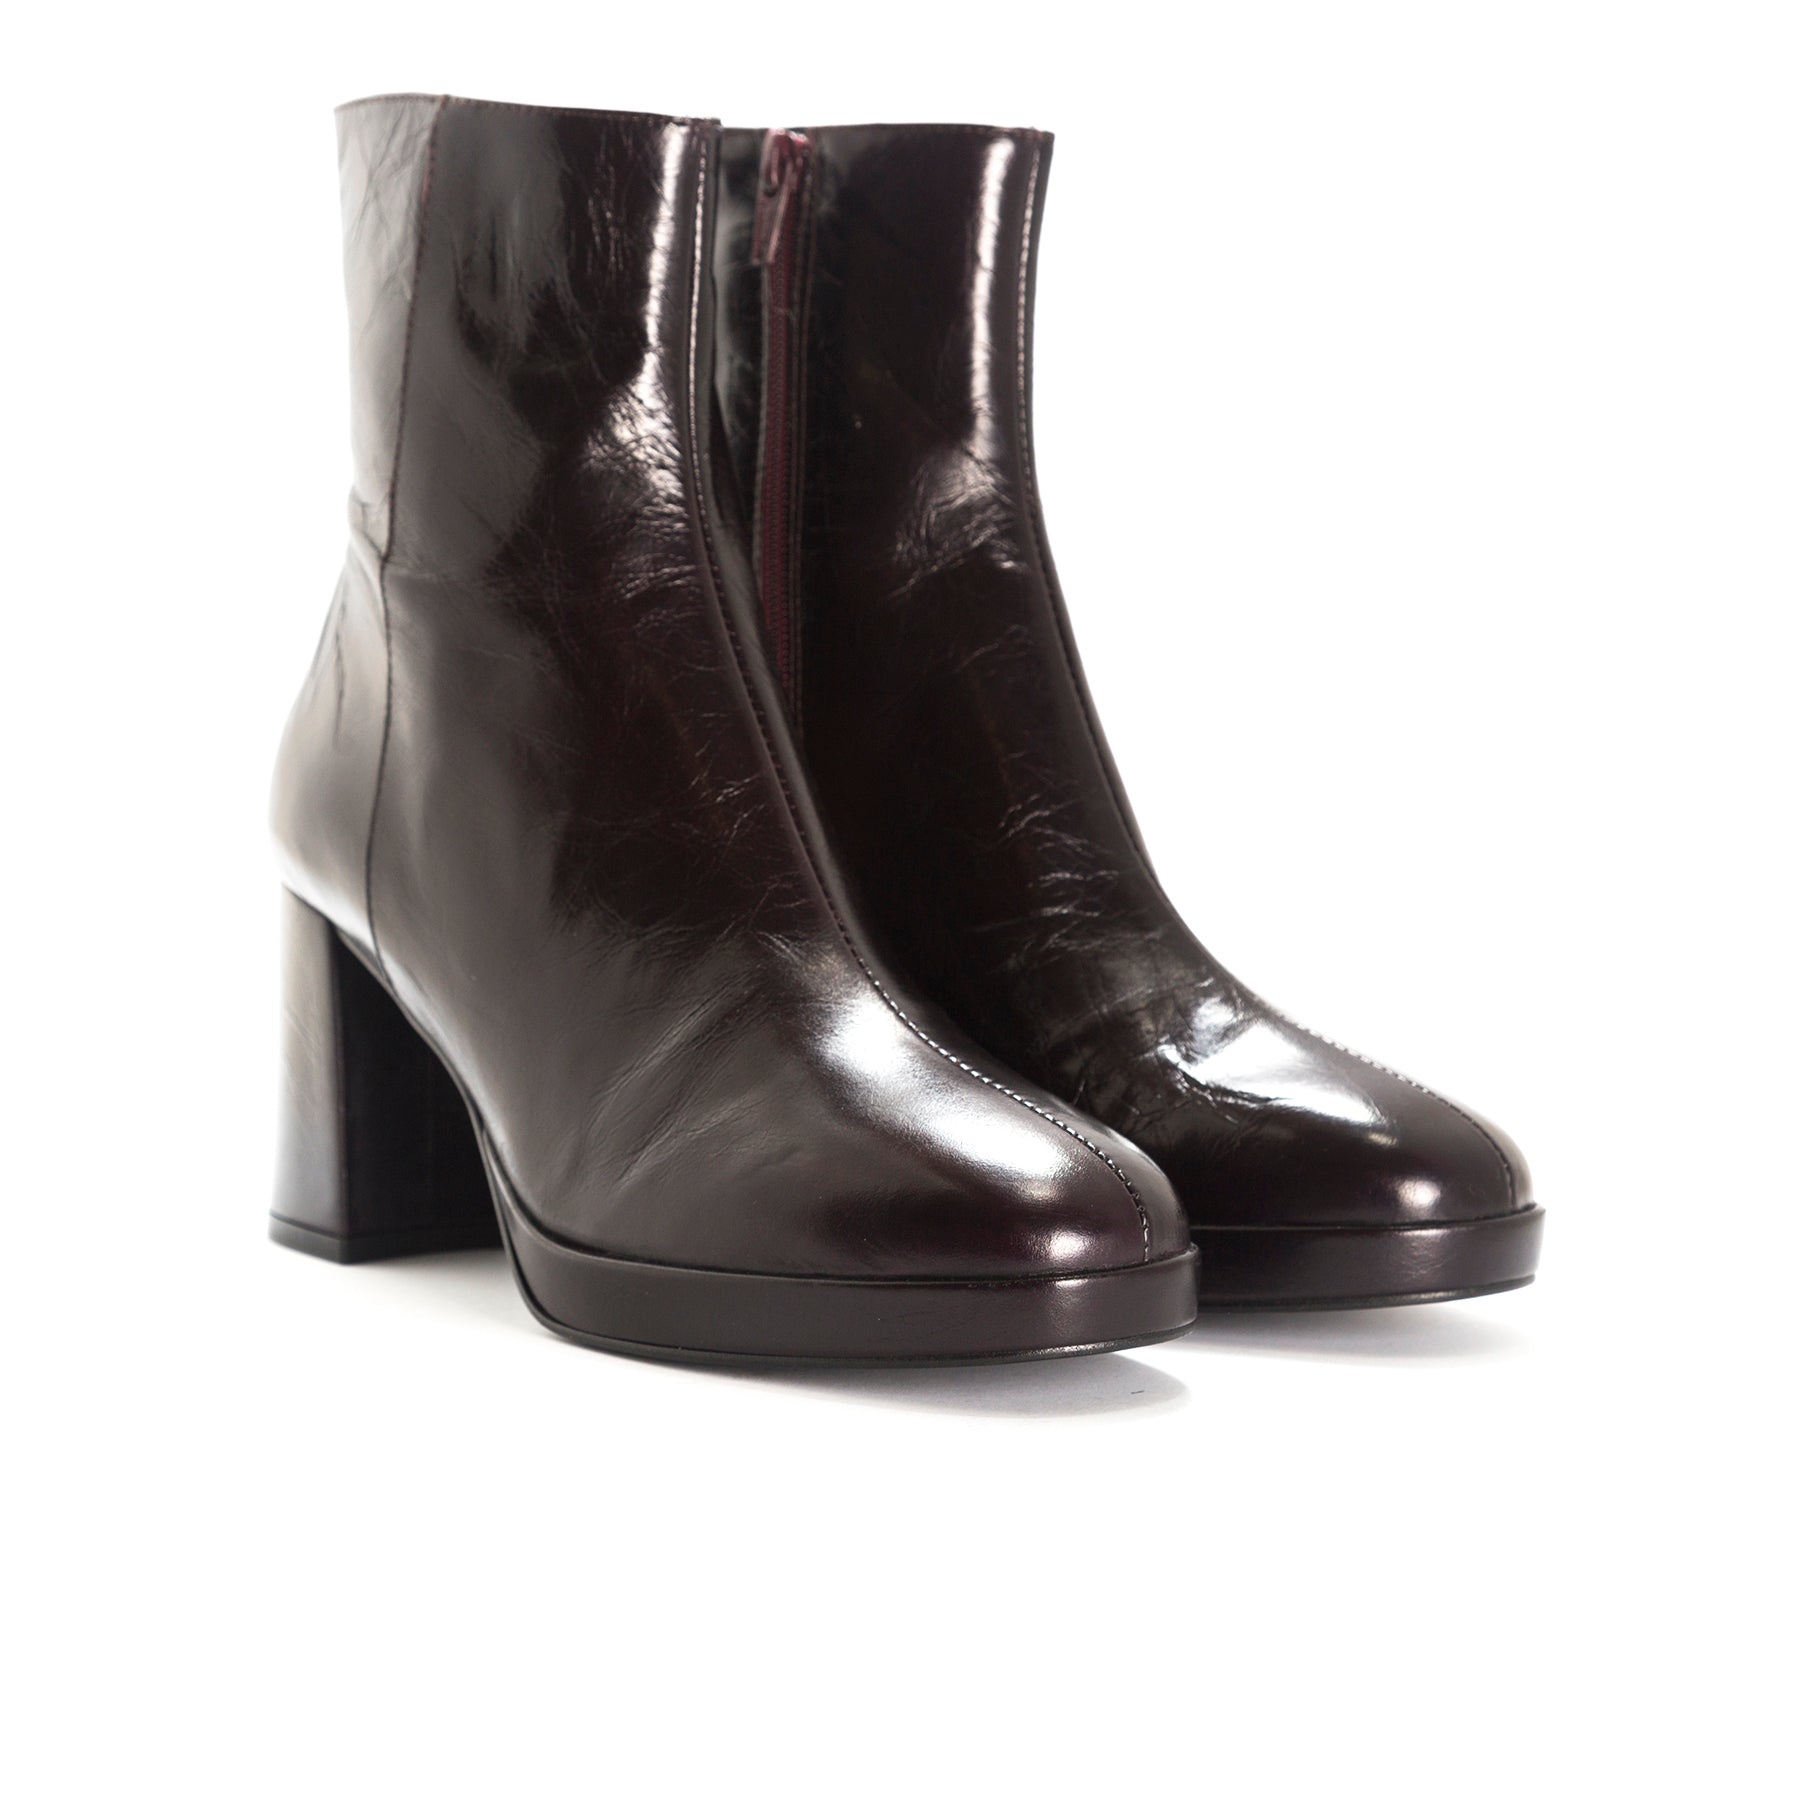 Henessey Bordo Leather Ankle Boots